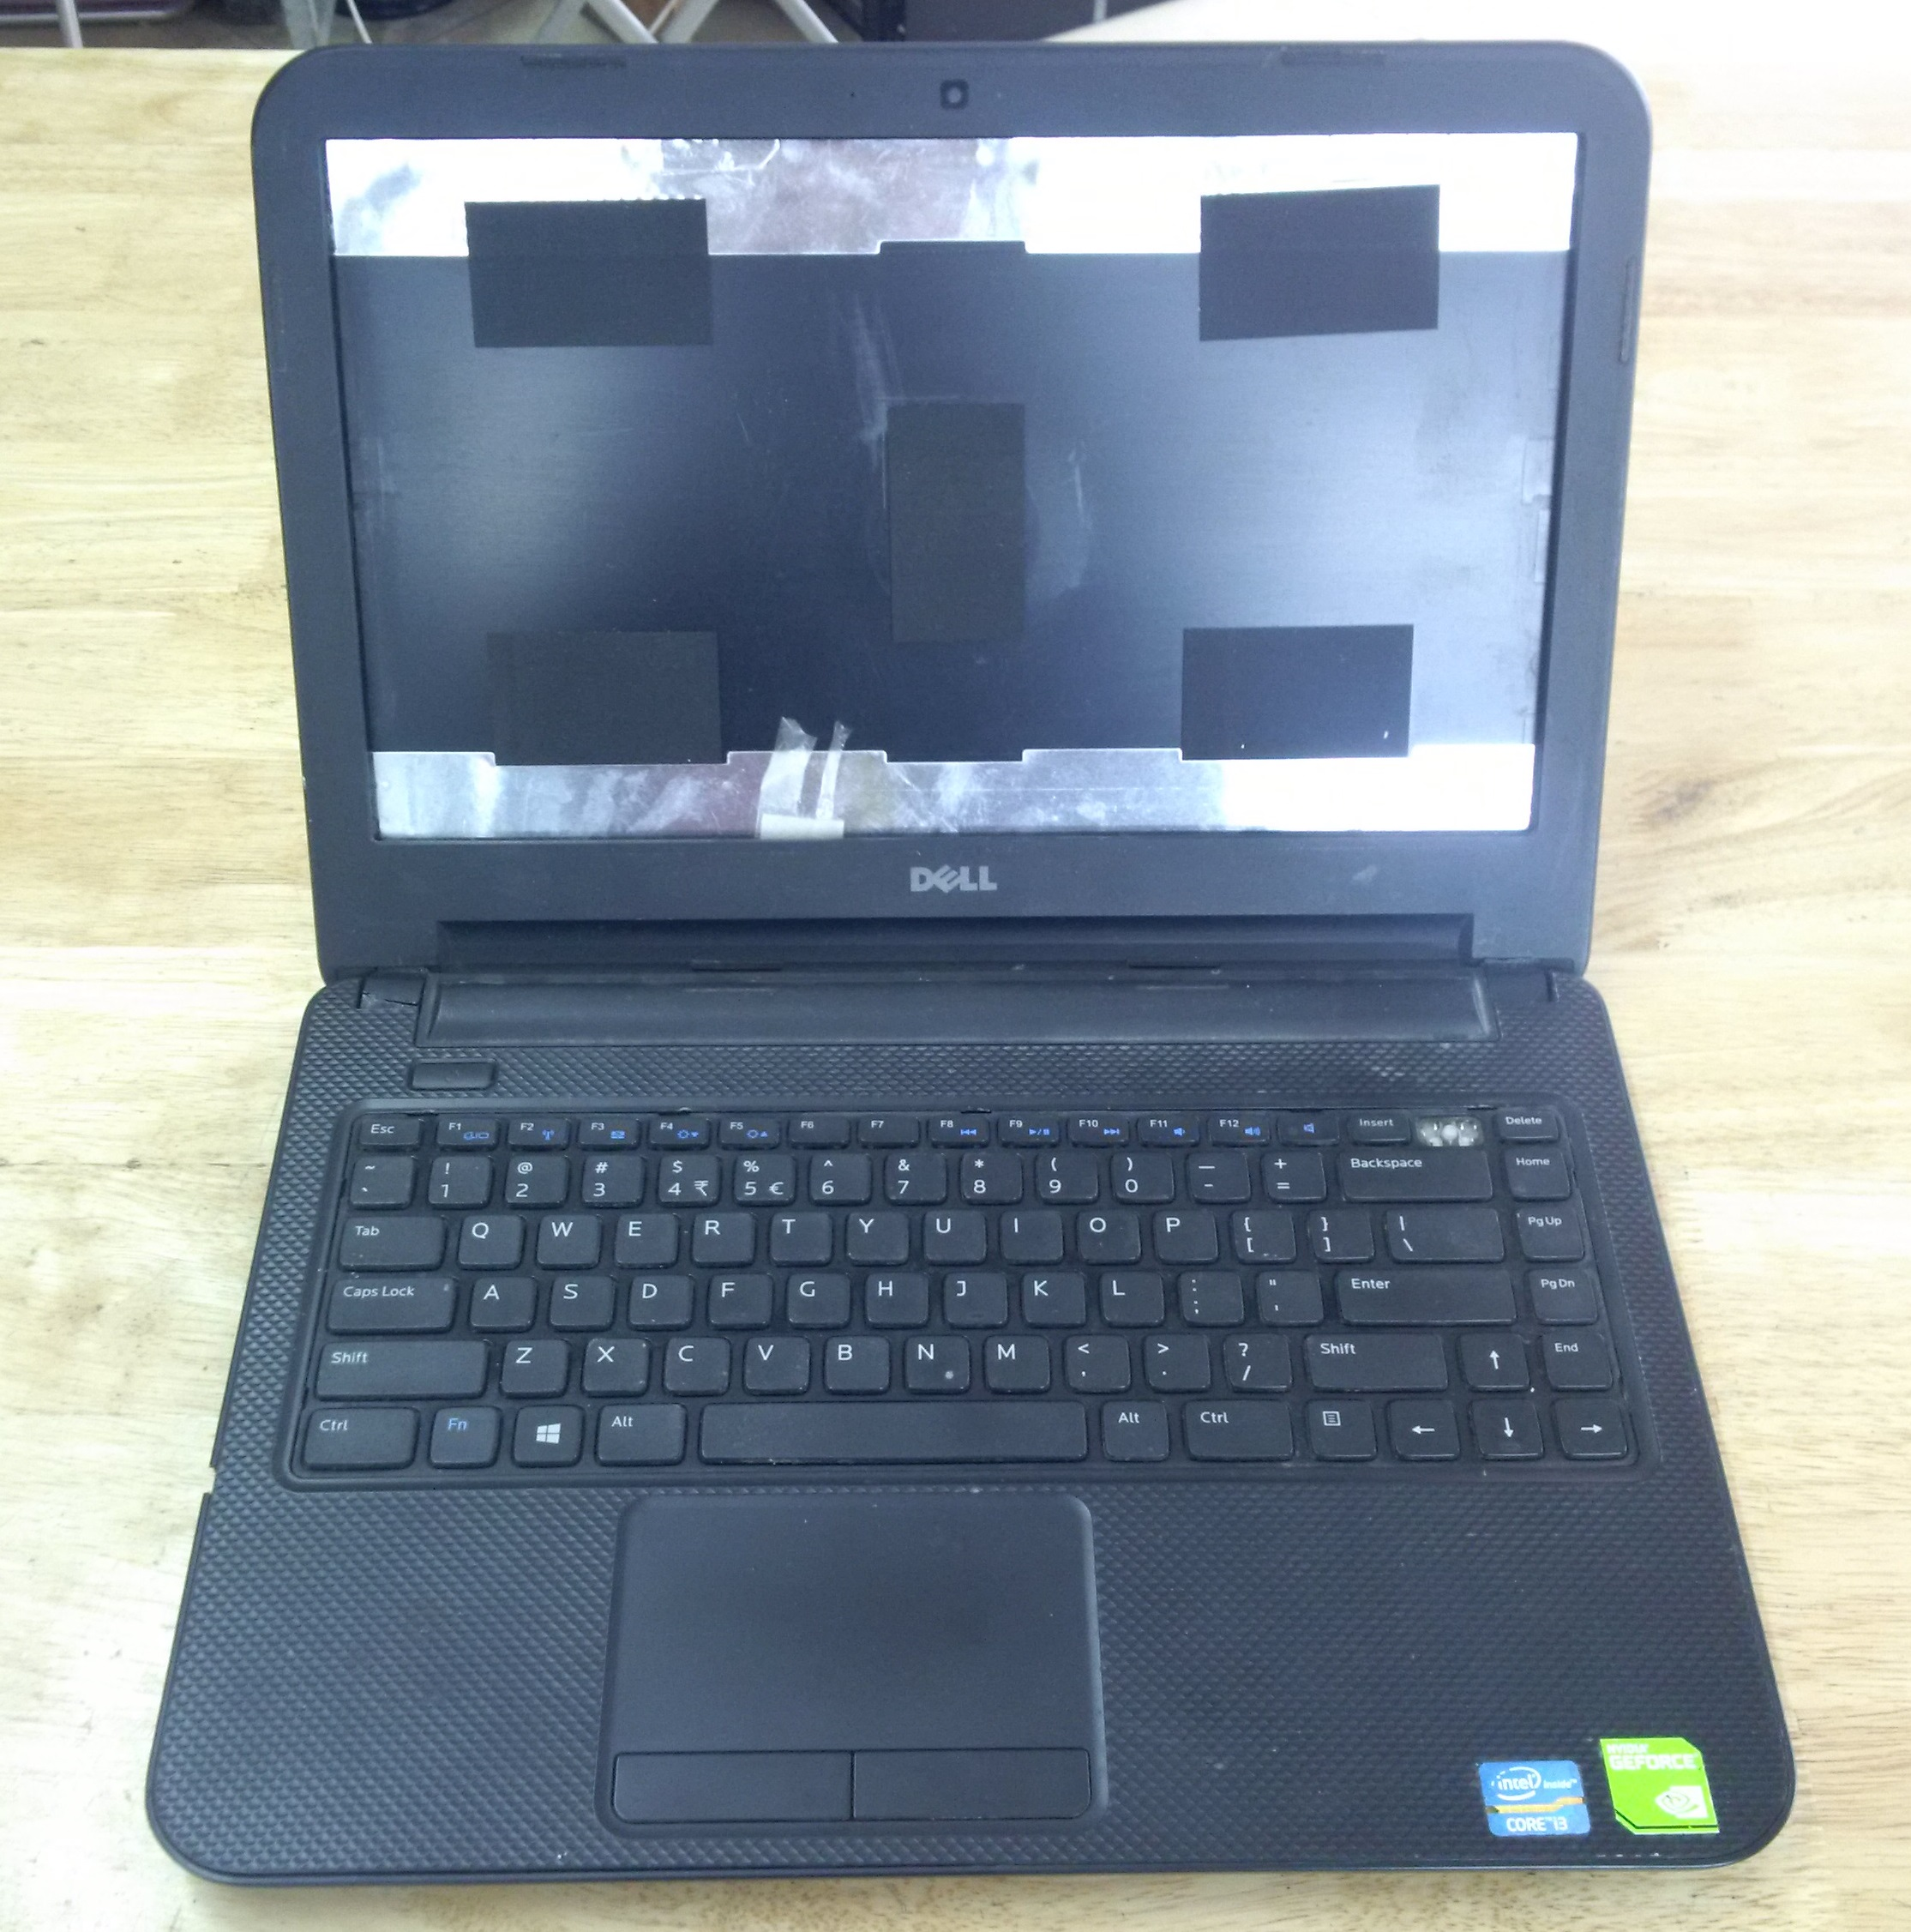 thay vỏ laptop dell inspiron 3421